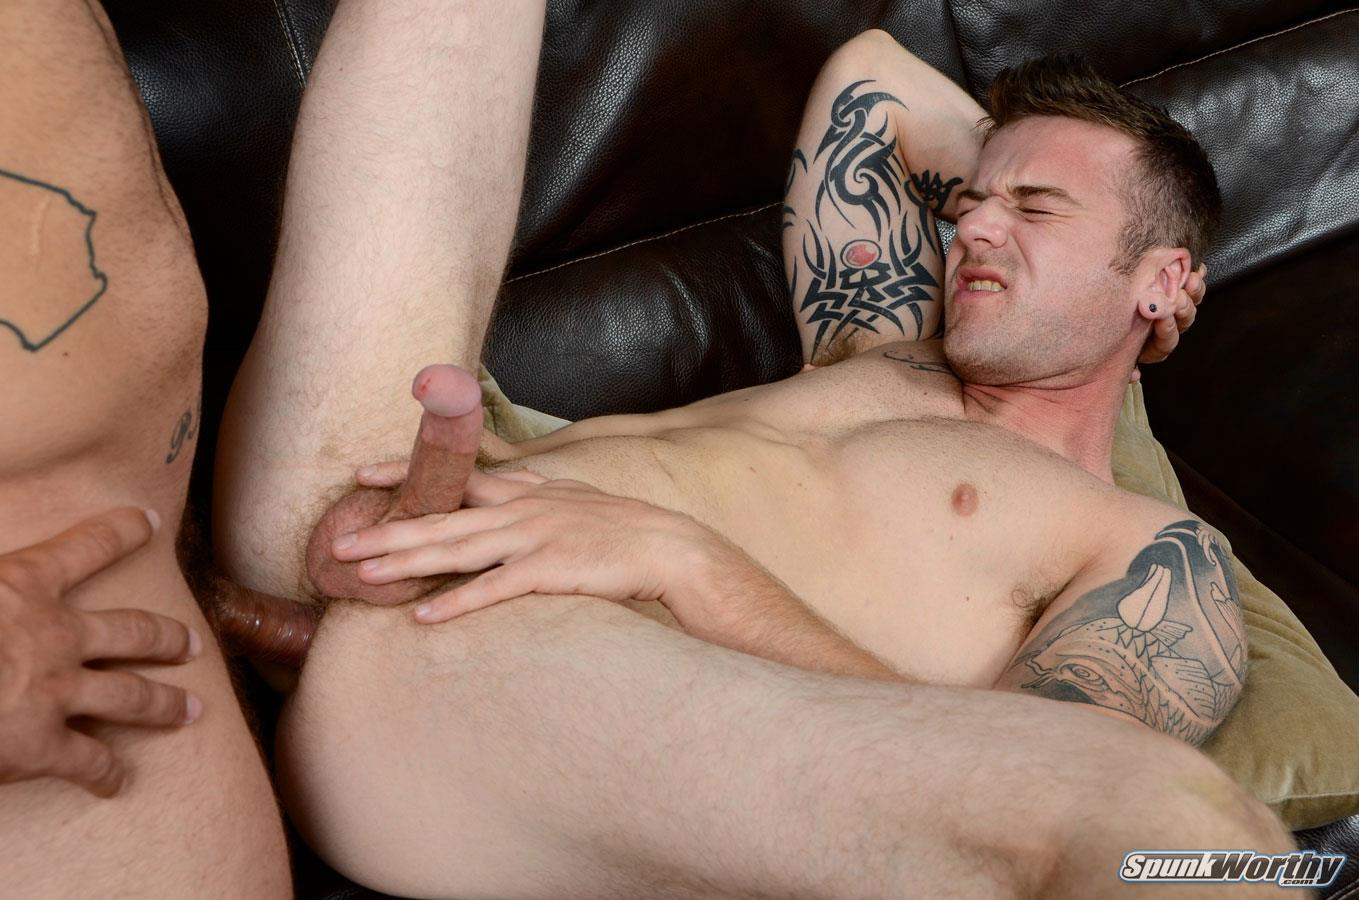 Gay anal double penetration video